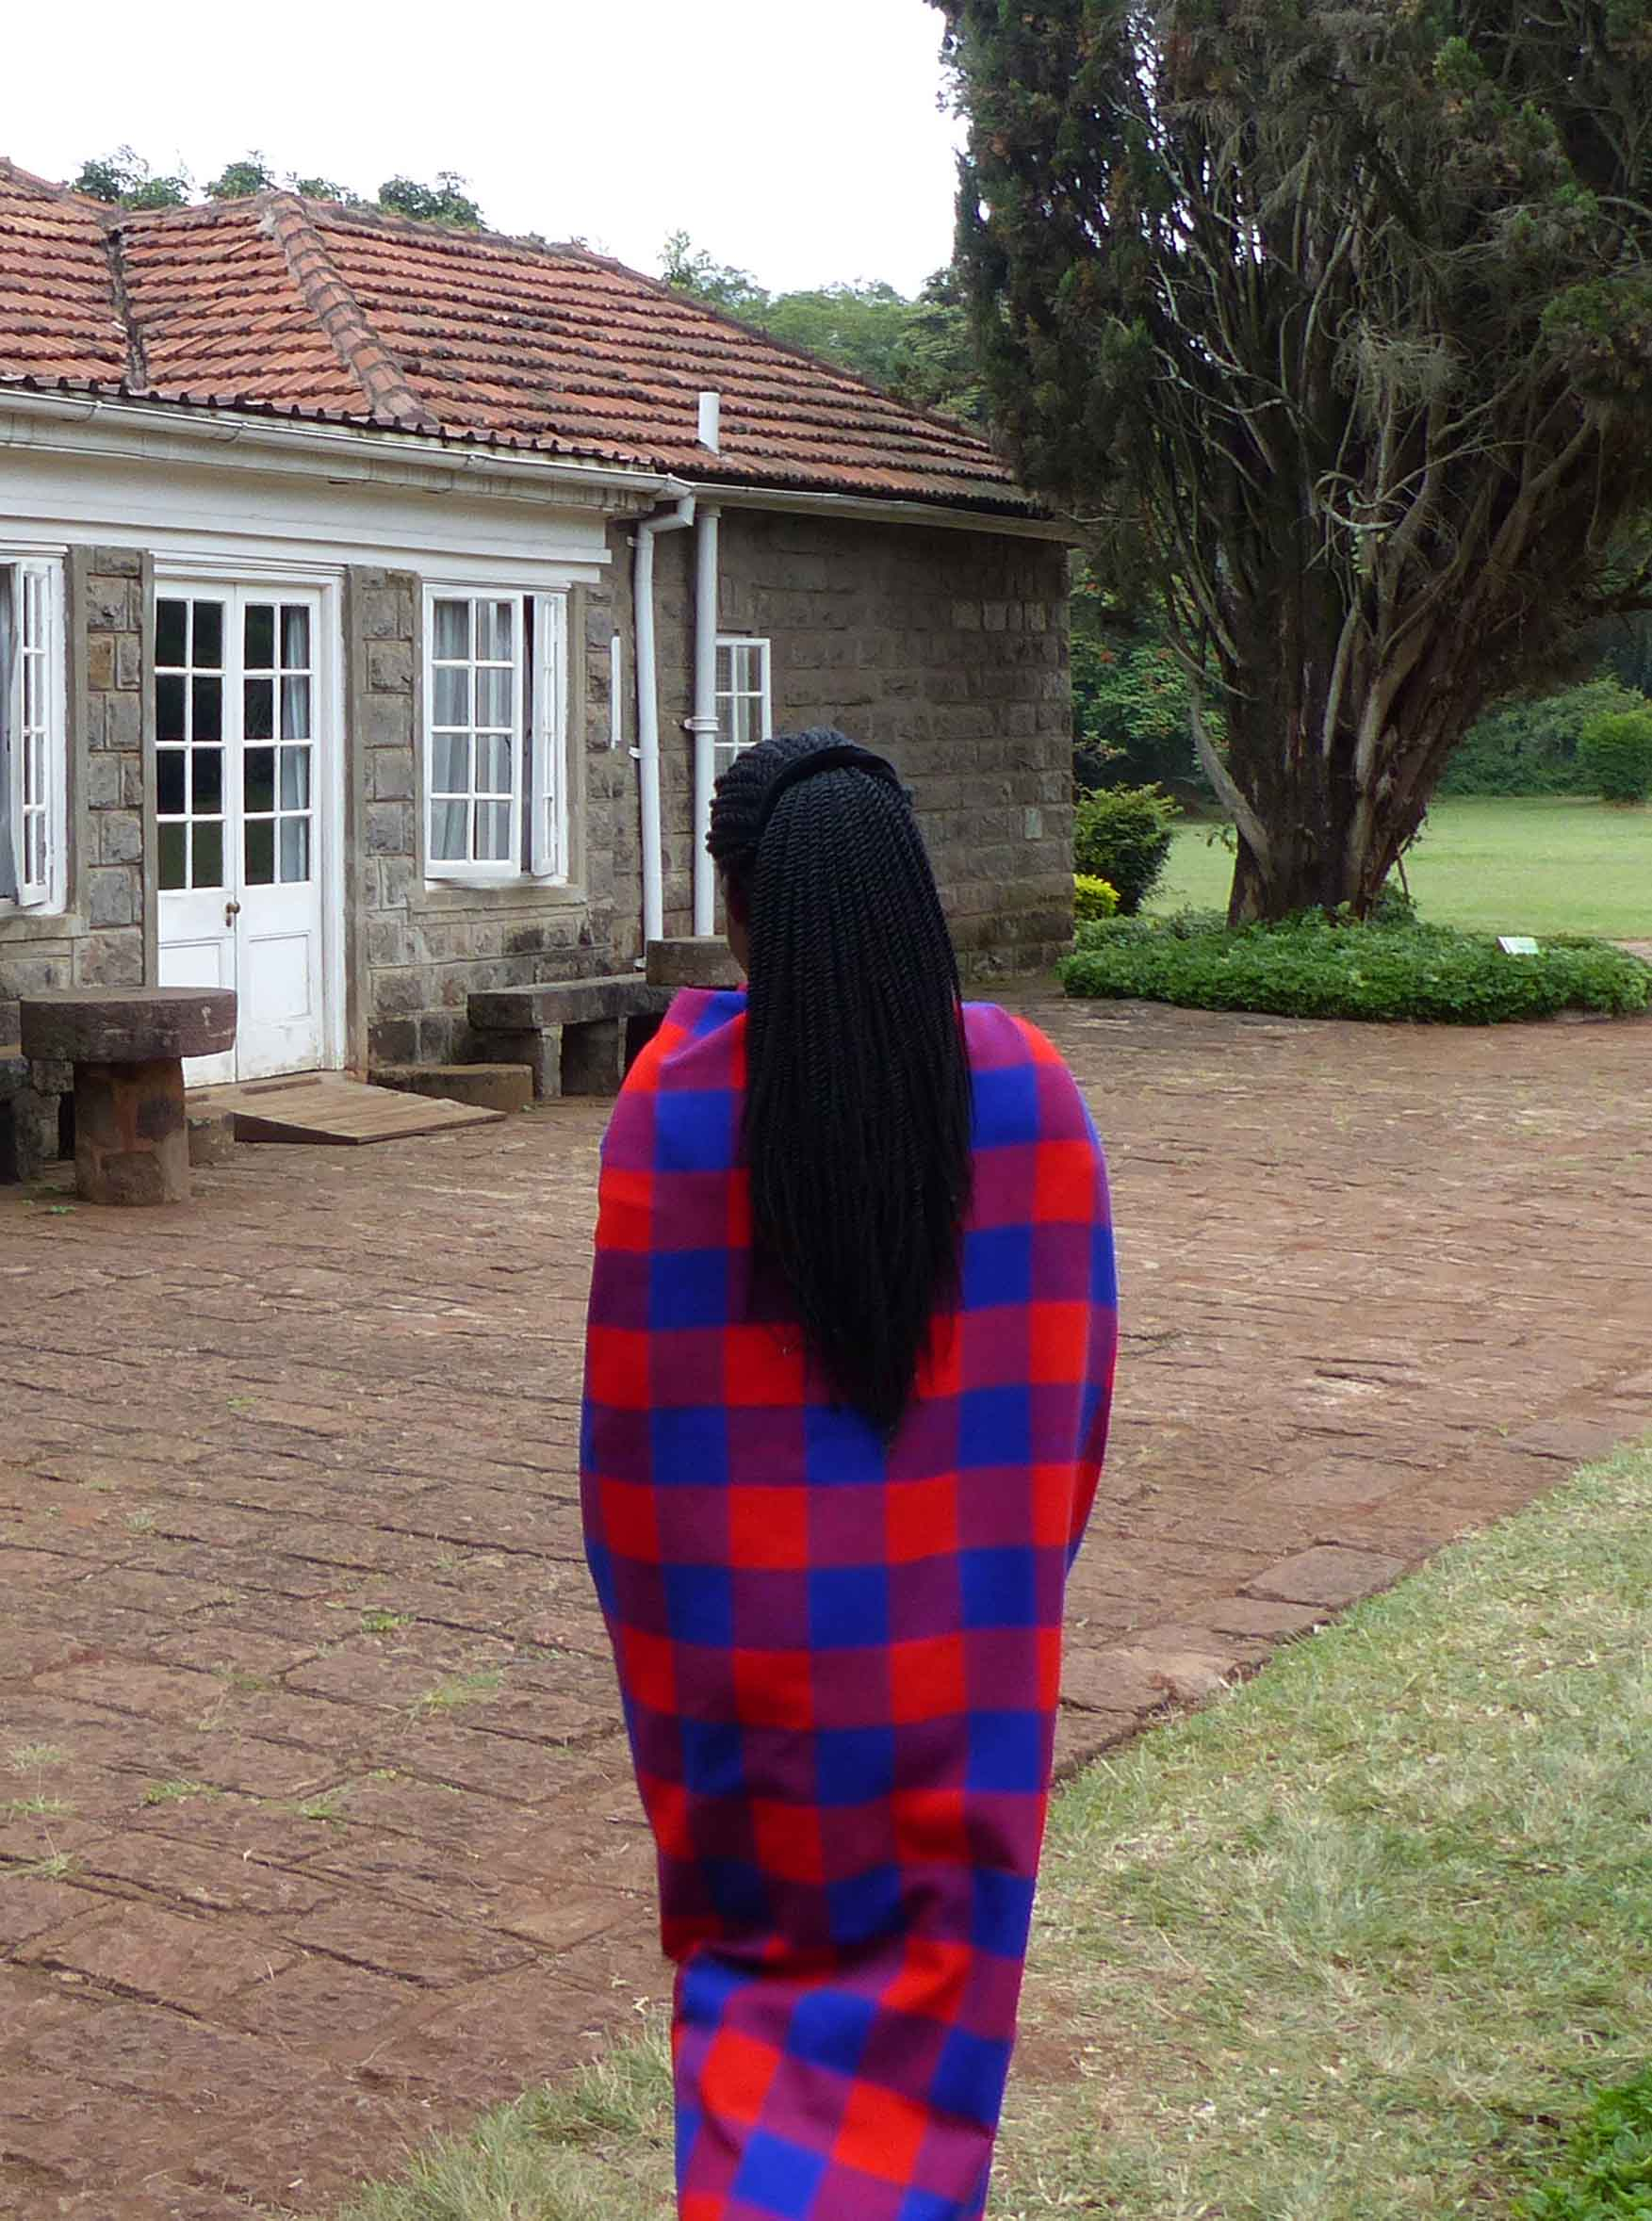 Young lady in blue and red checked blanket, from behind